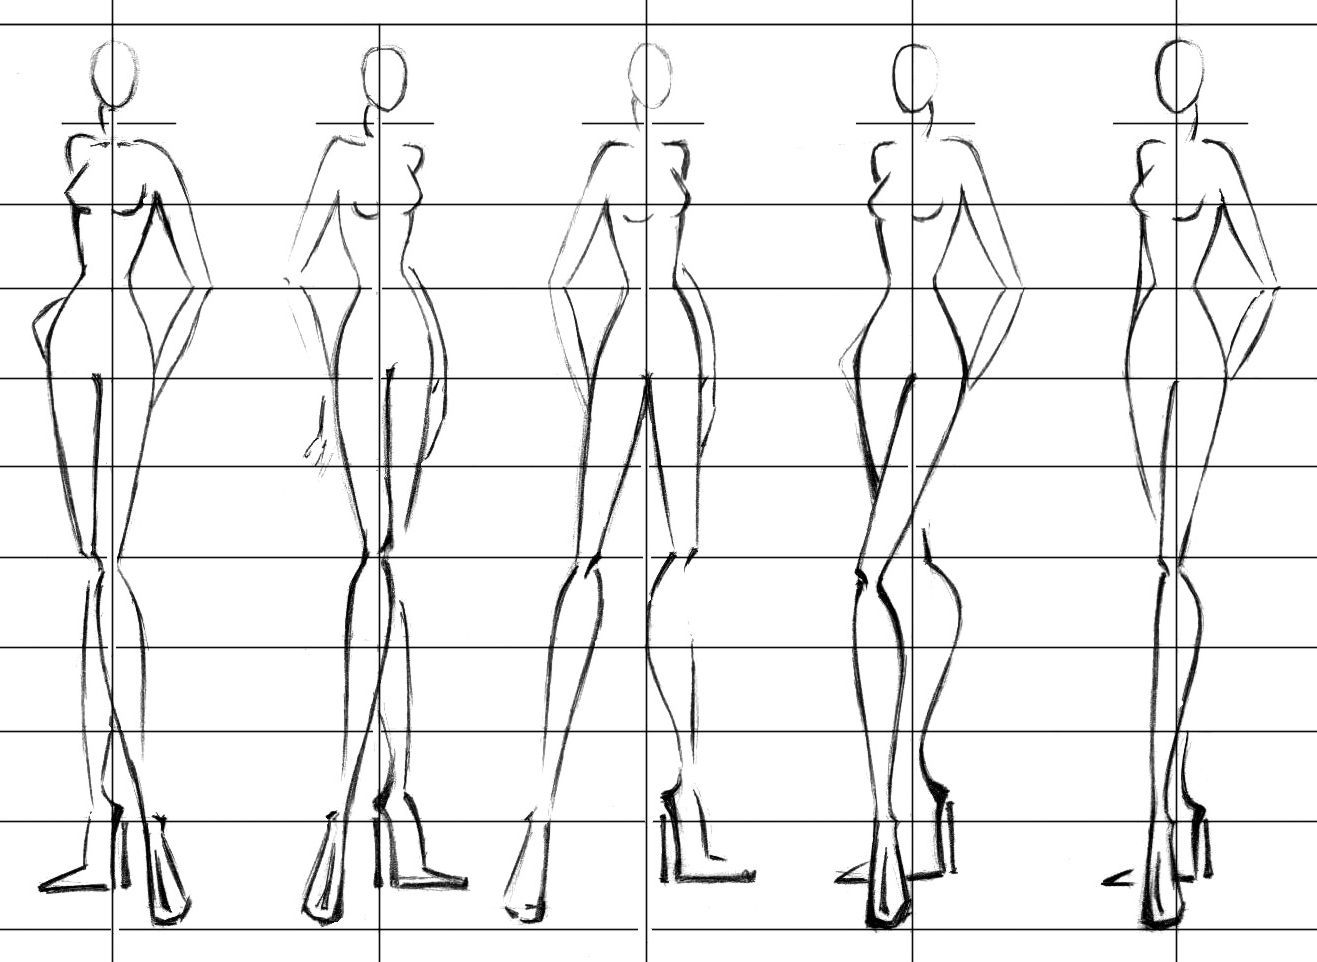 image about Printable Fashion Croquis referred to as 12 mind croquis - Google Glimpse Model Examples